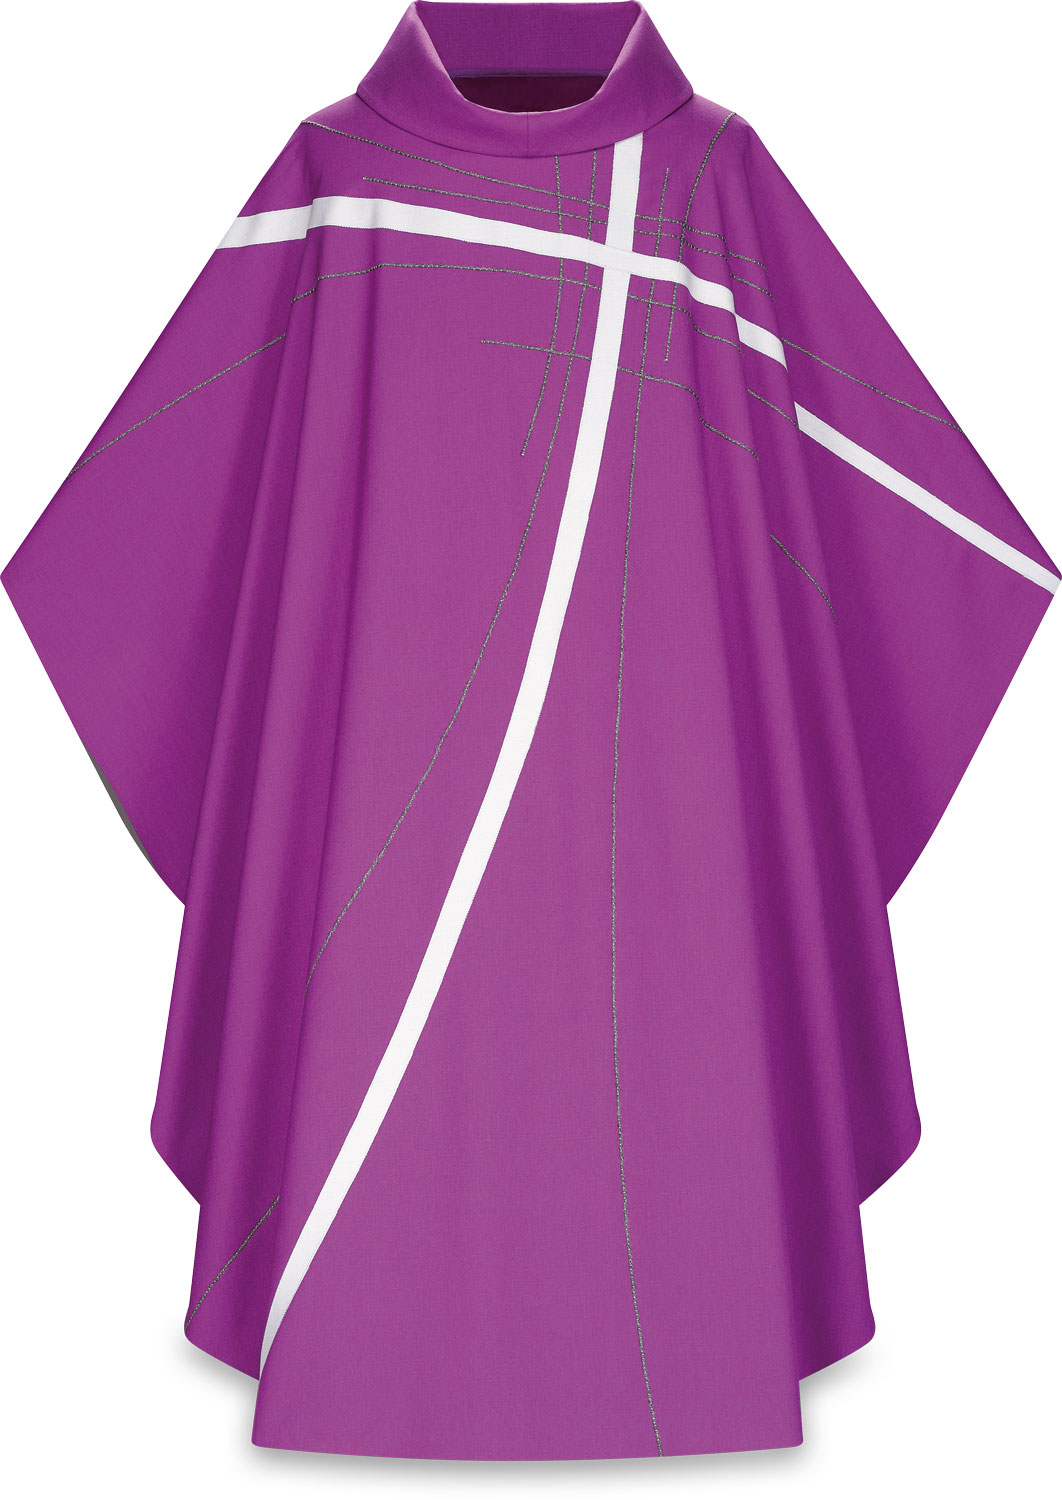 Chasuble | Purple | 5226 | Slabbinck